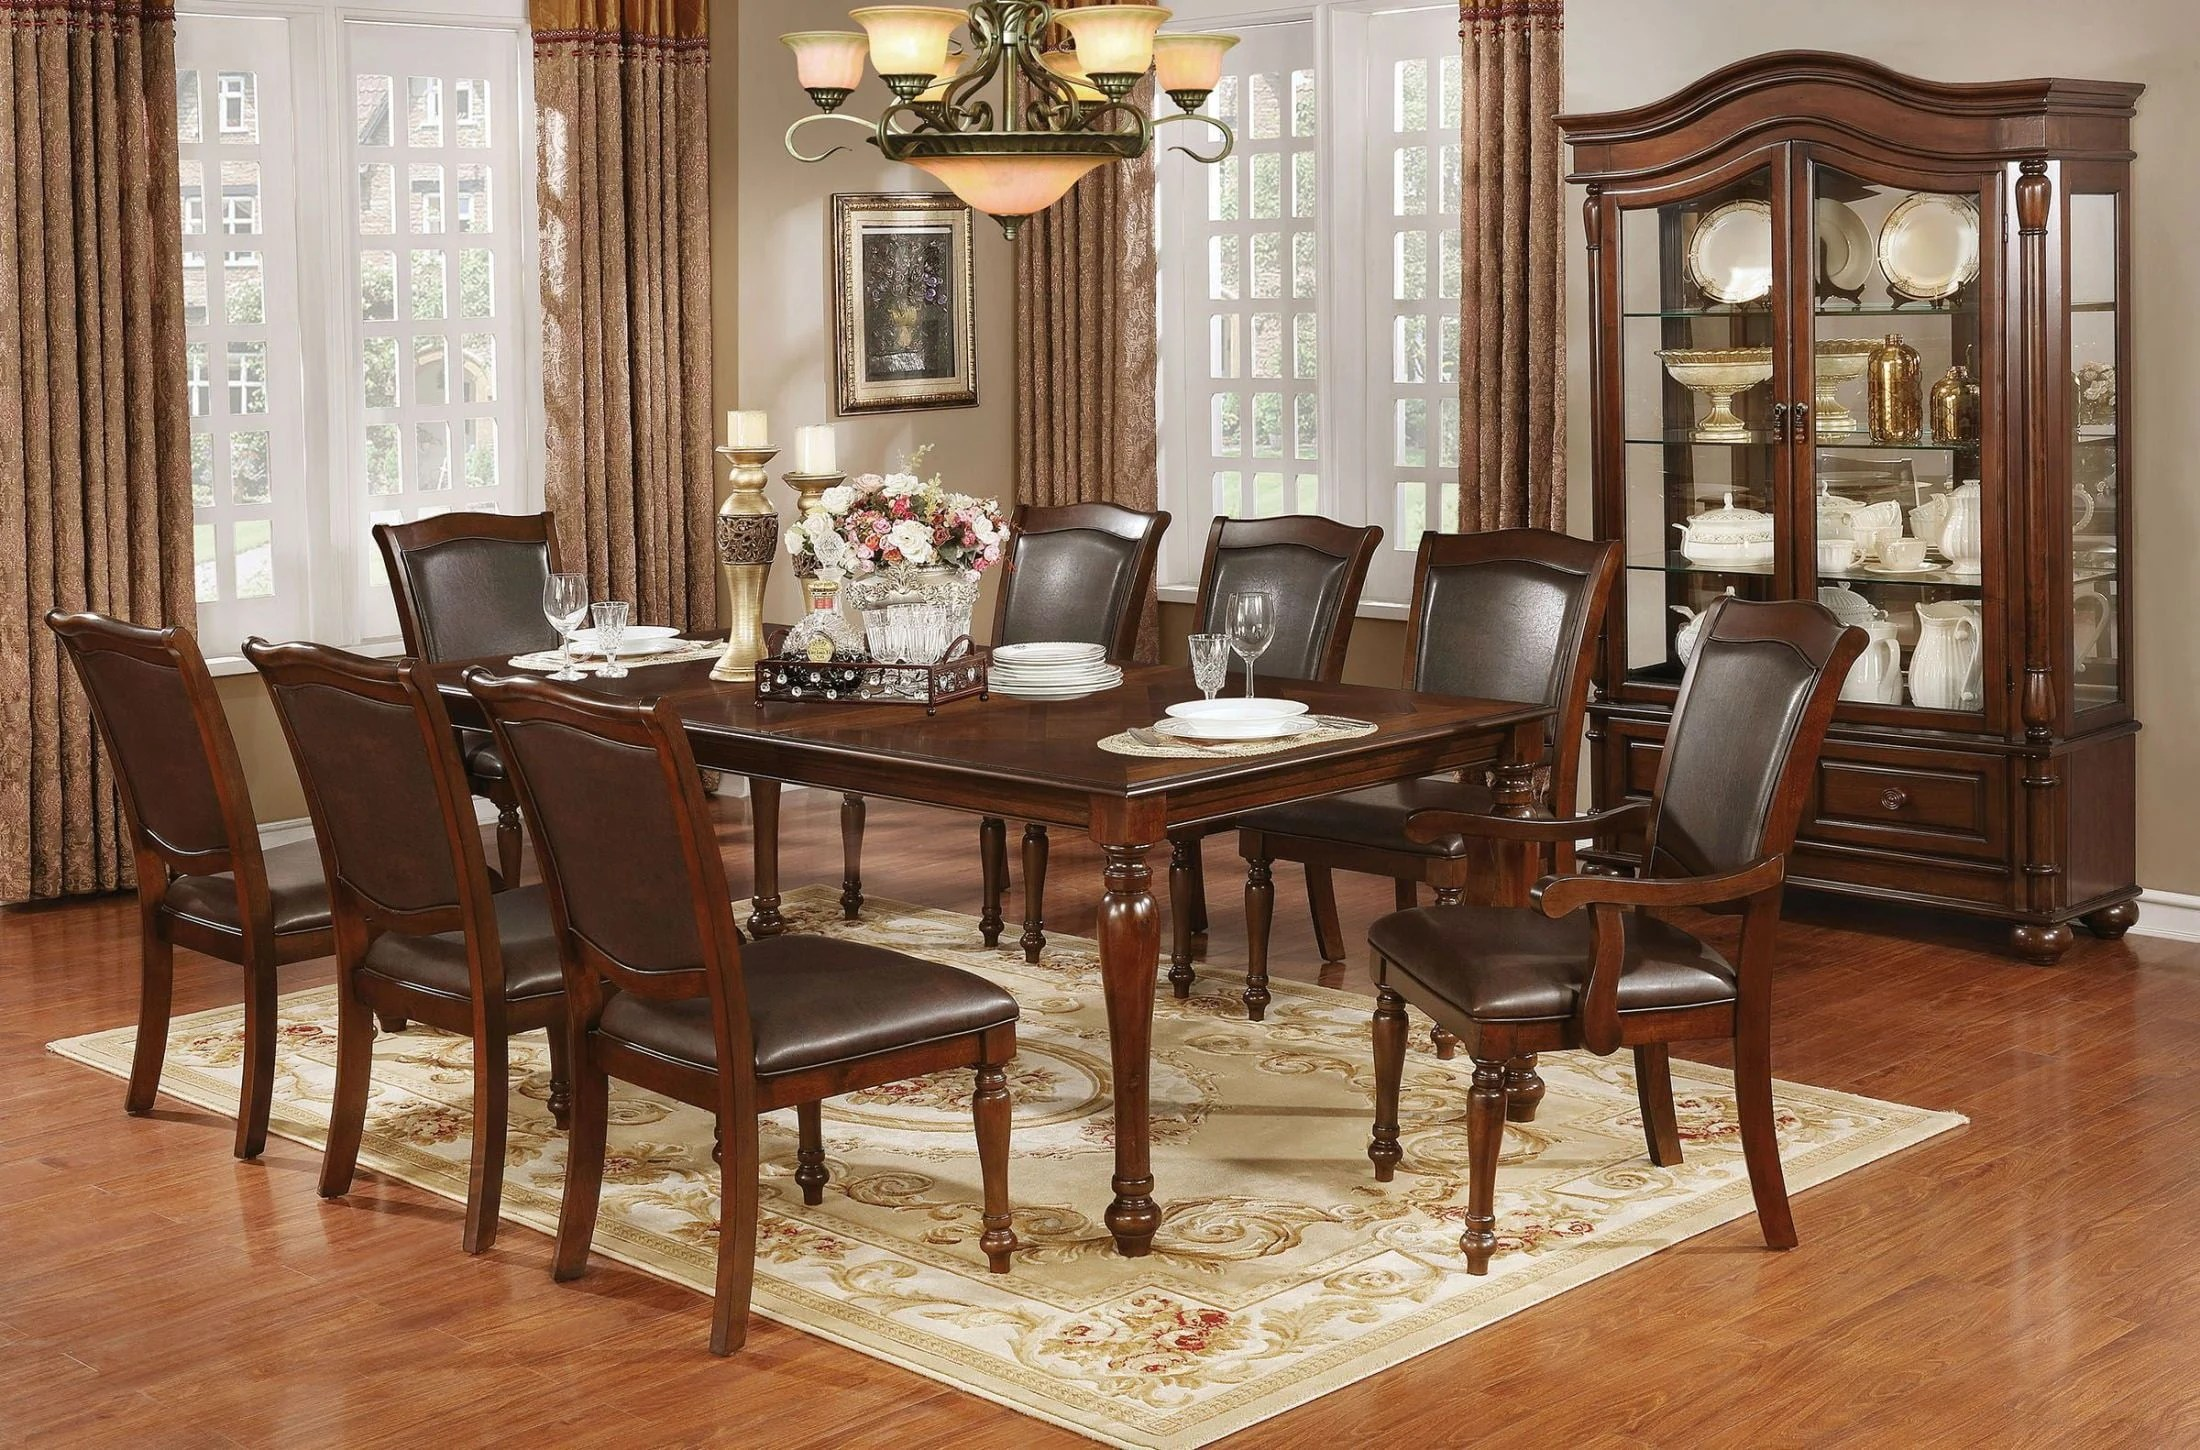 Furniture of America Sylvana Brown Cherry Dining Room Set